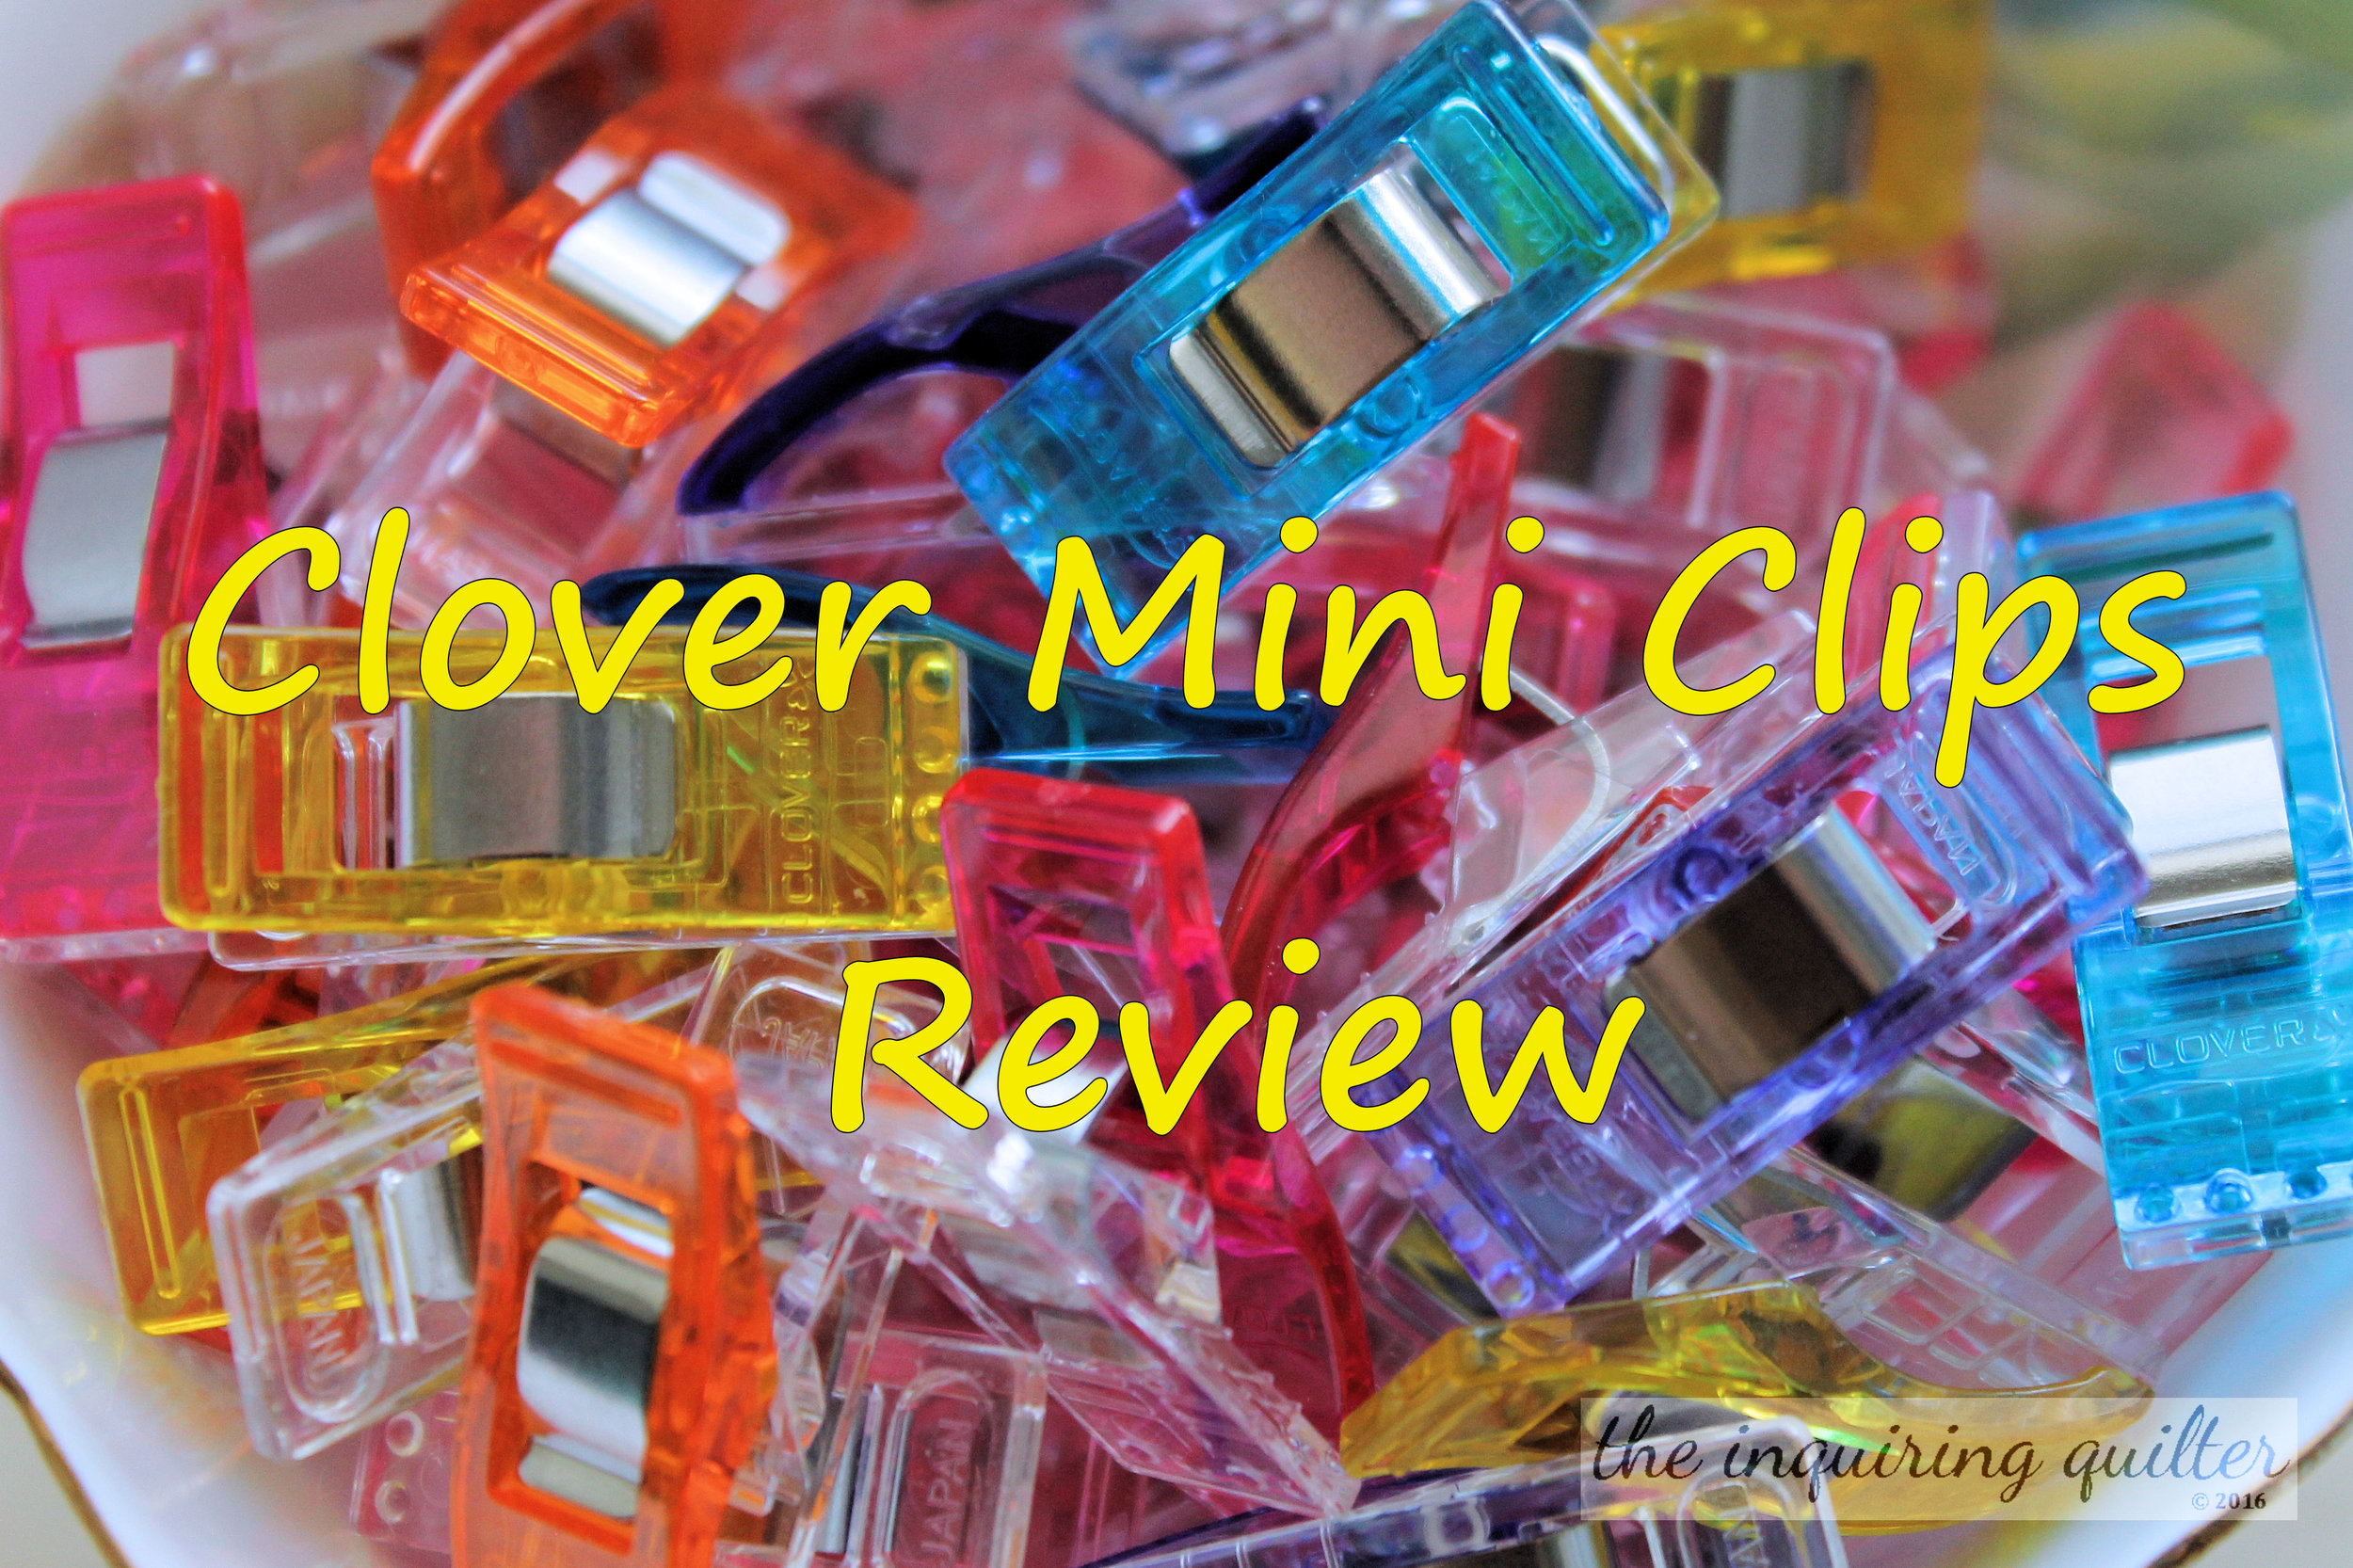 Clover clips review.jpg